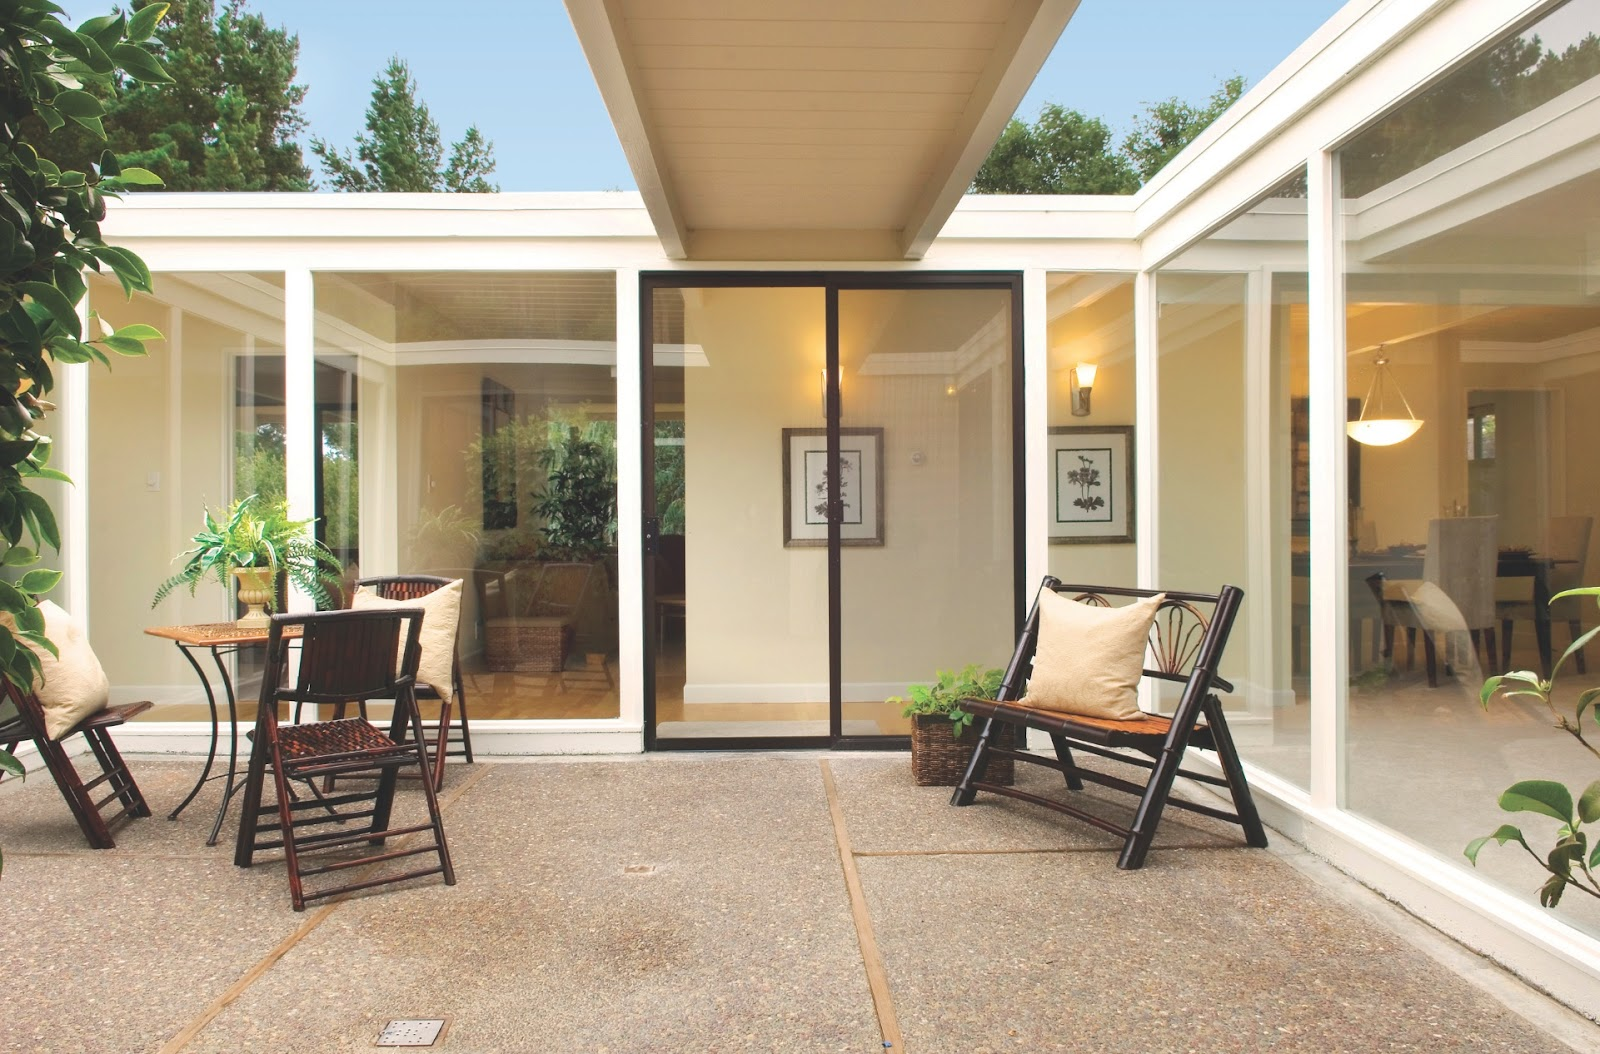 White floors joseph eichler american mid century modern homes for Mid century modern prefab homes